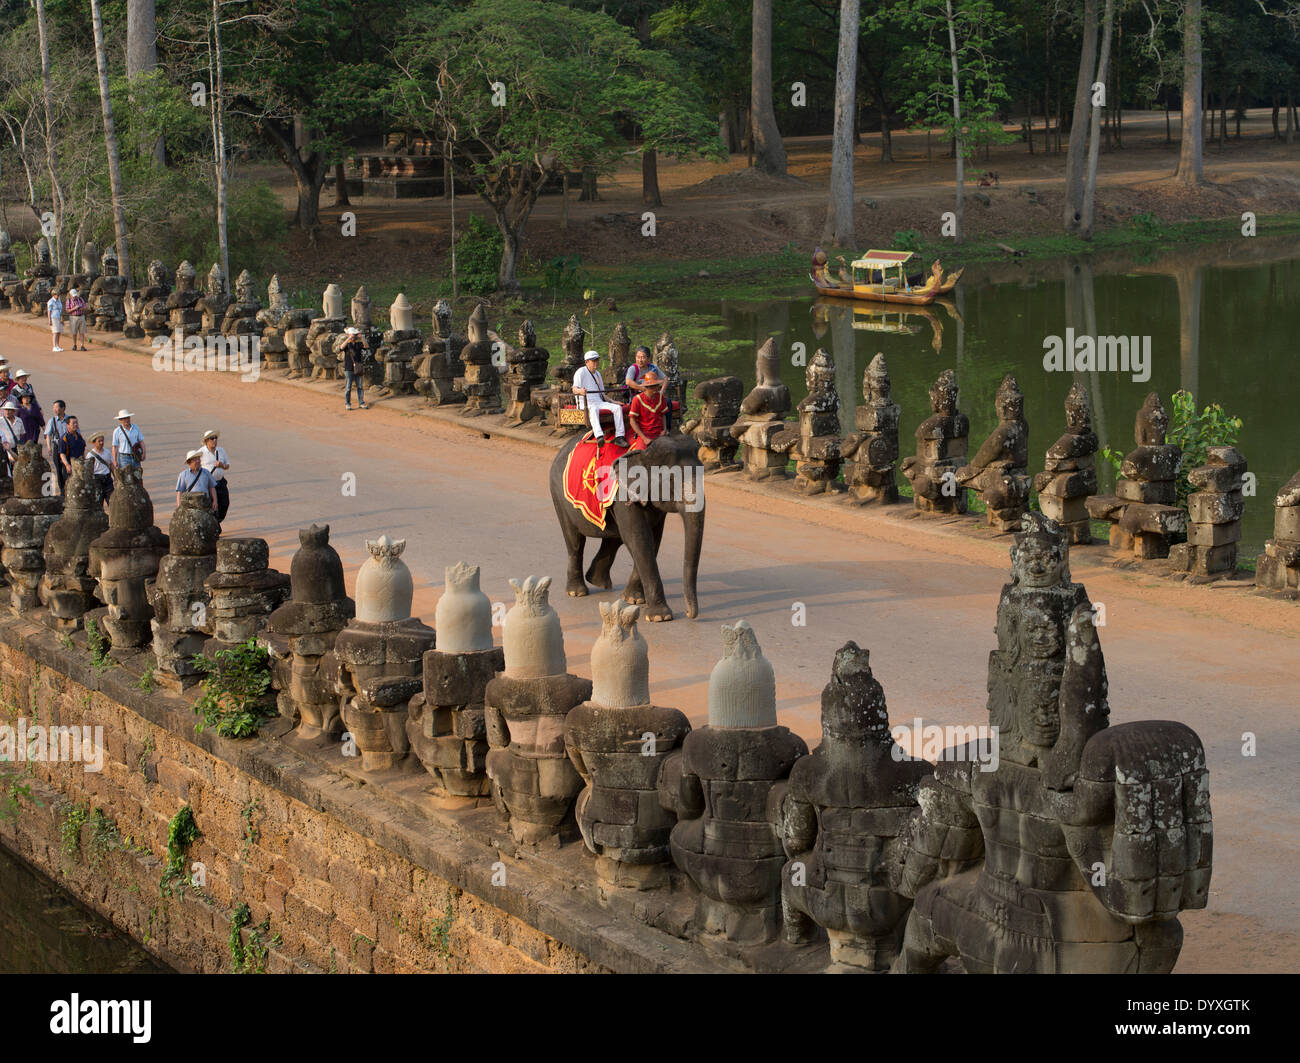 Tourists riding on an elephant approach the South Gate of Angkor Thom, Siem Reap, Cambodia - Stock Image